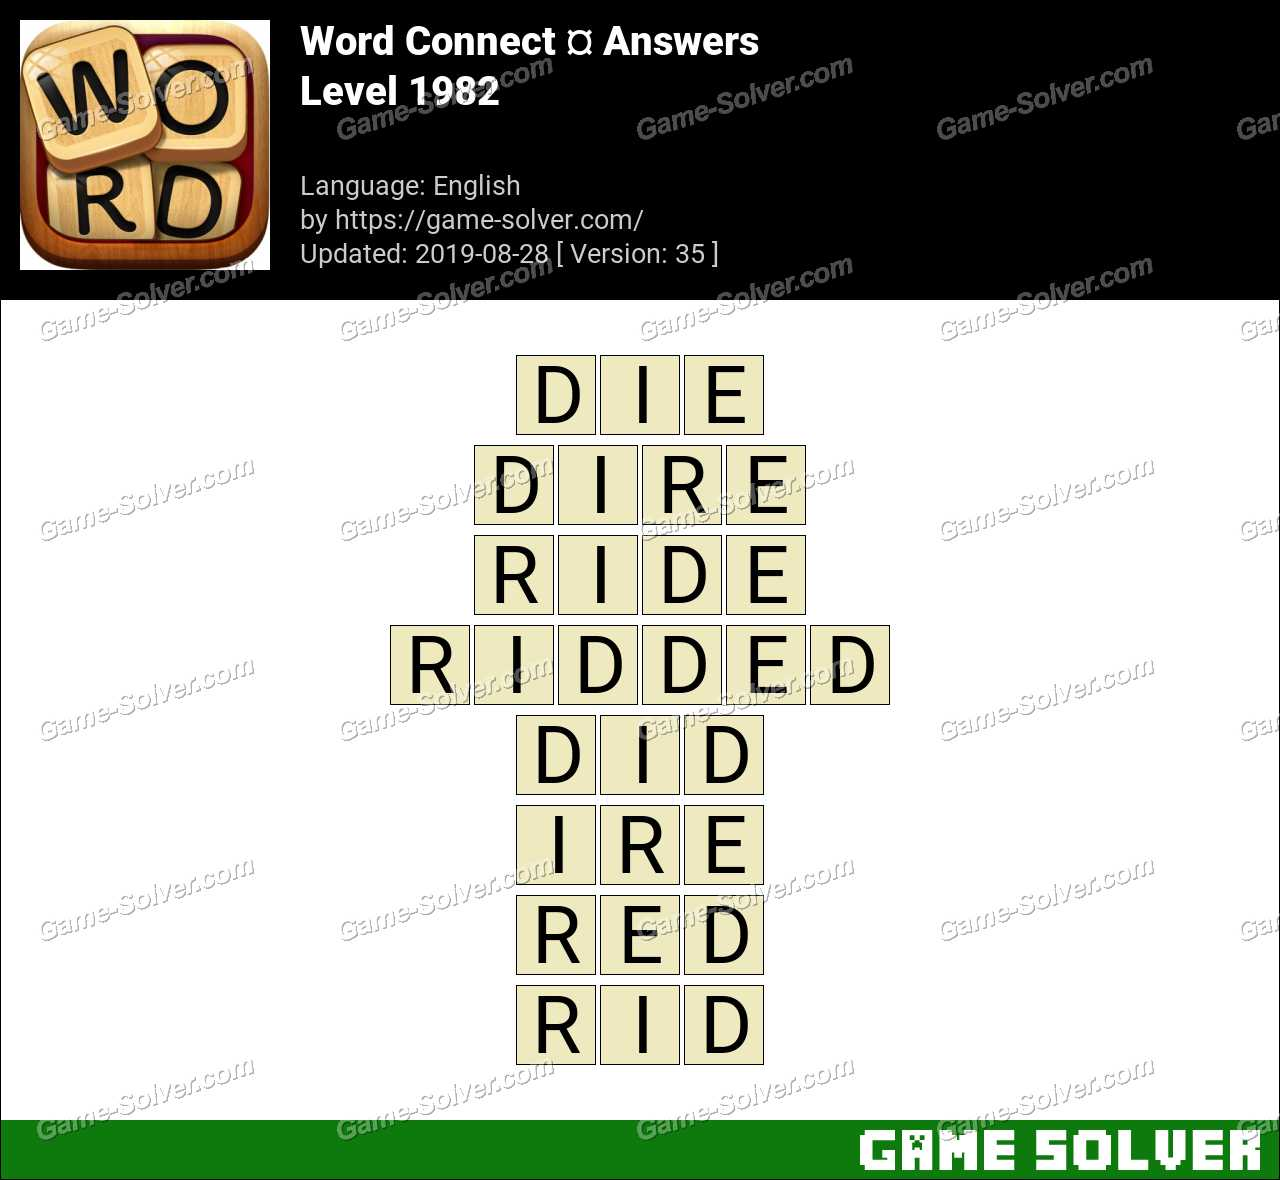 Word Connect Level 1982 Answers